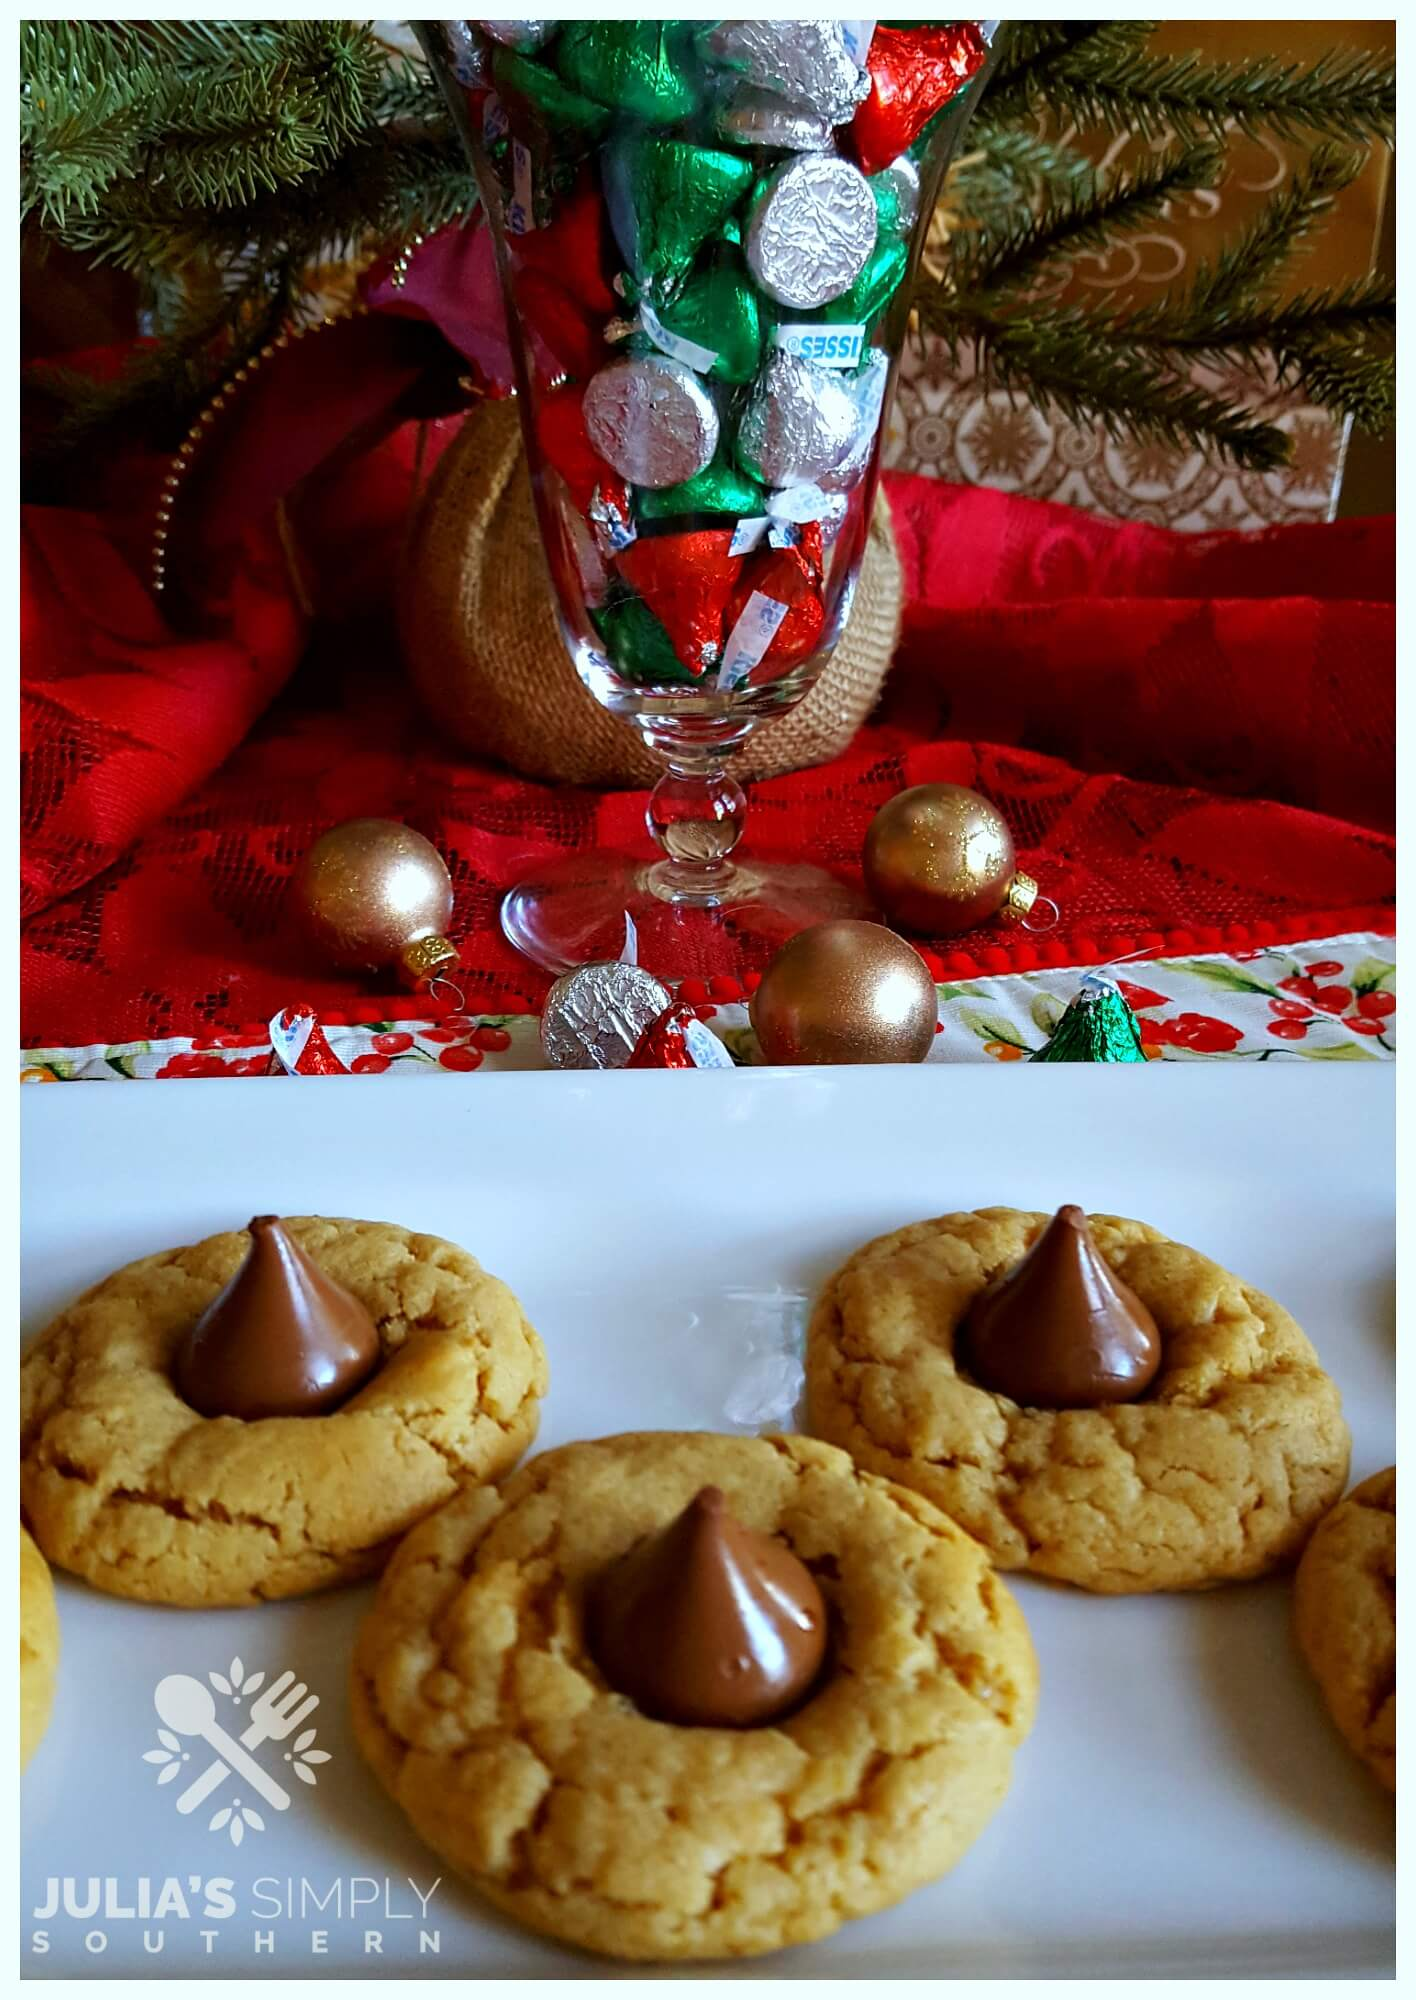 Peanut butter cookies with a Hershey Kiss for Christmas